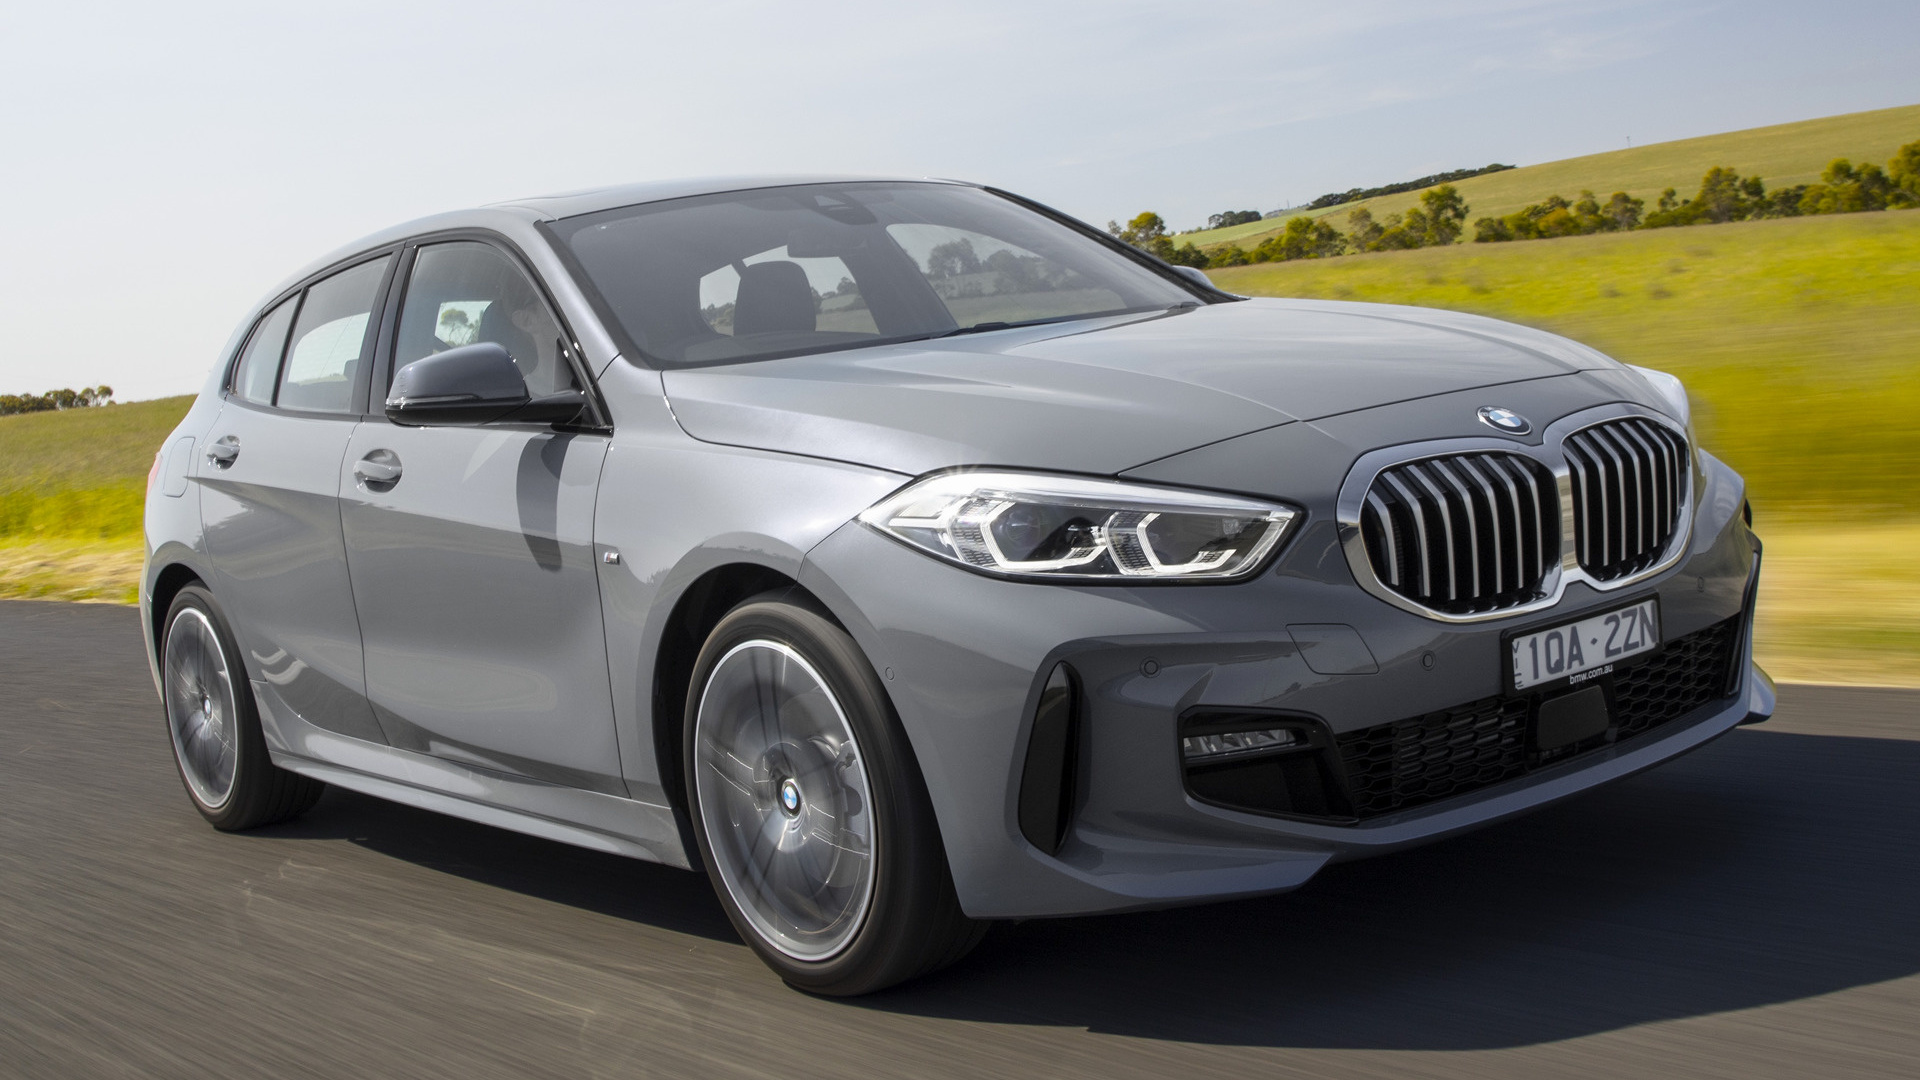 2019 BMW 1 Series M Sport (AU) - Wallpapers and HD Images ...